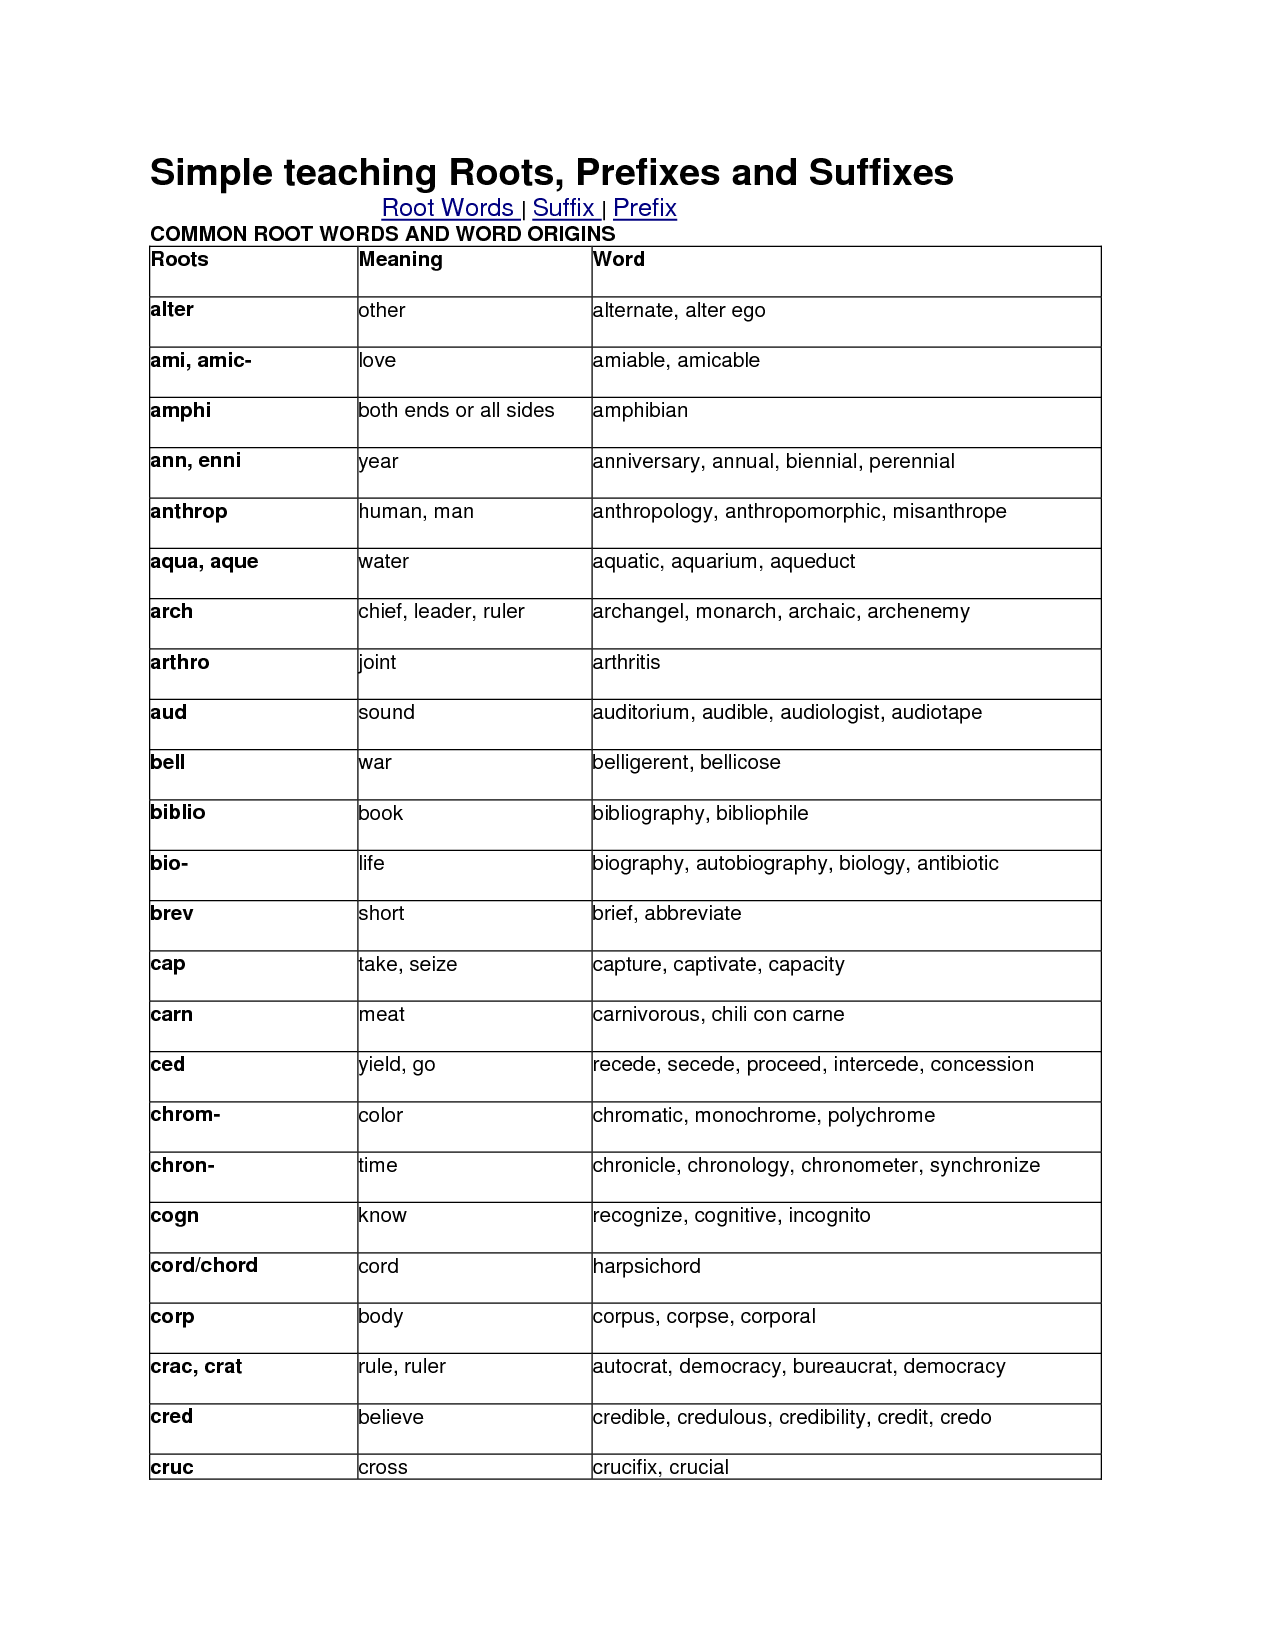 Medical Terminology Prefixes And Suffixes Worksheet